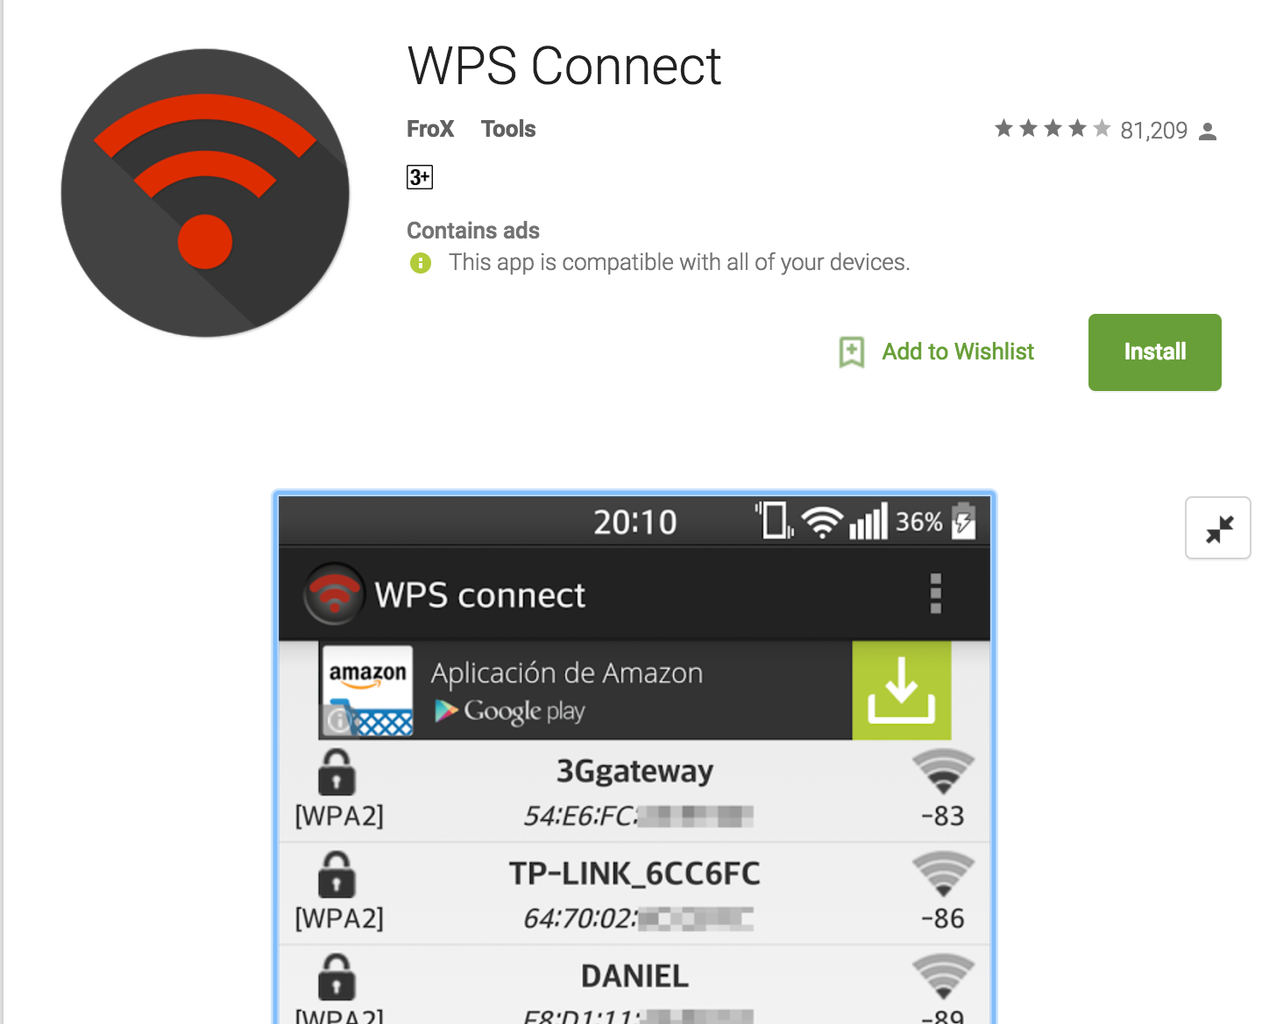 How to Quickly Hack WiFi on Android Using WPS Connect